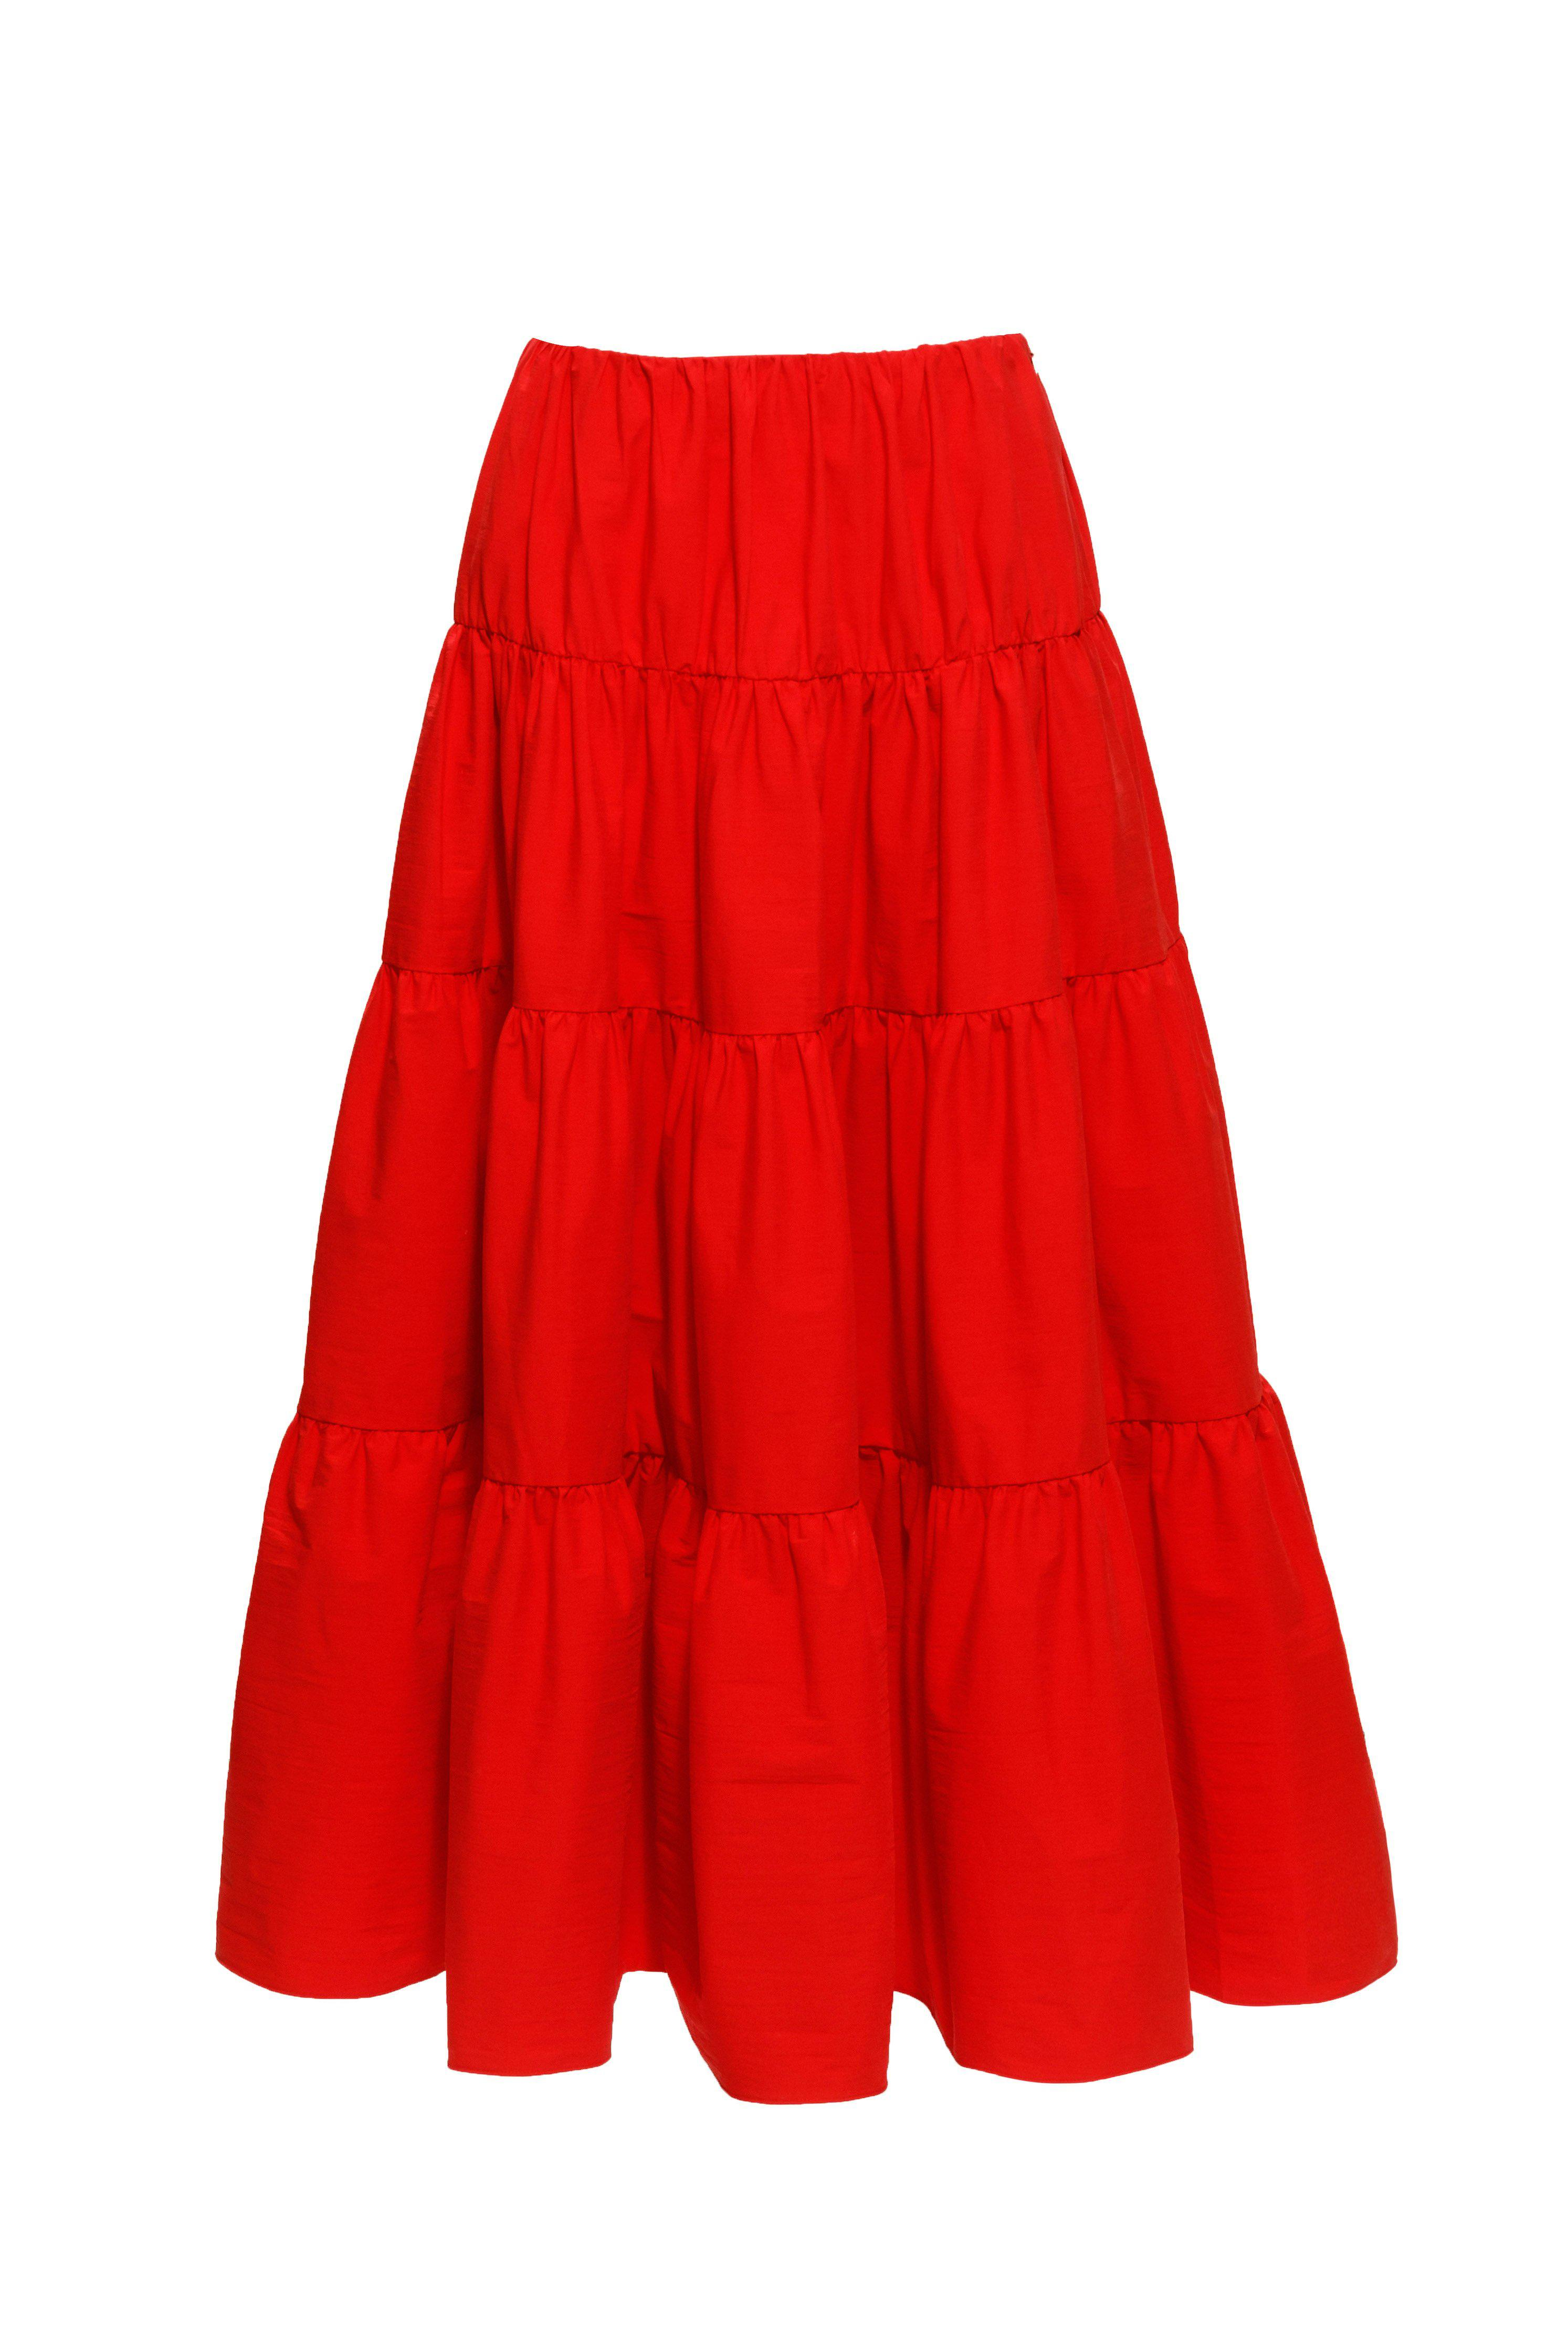 Multi Tiered Swing Skirt (Red)